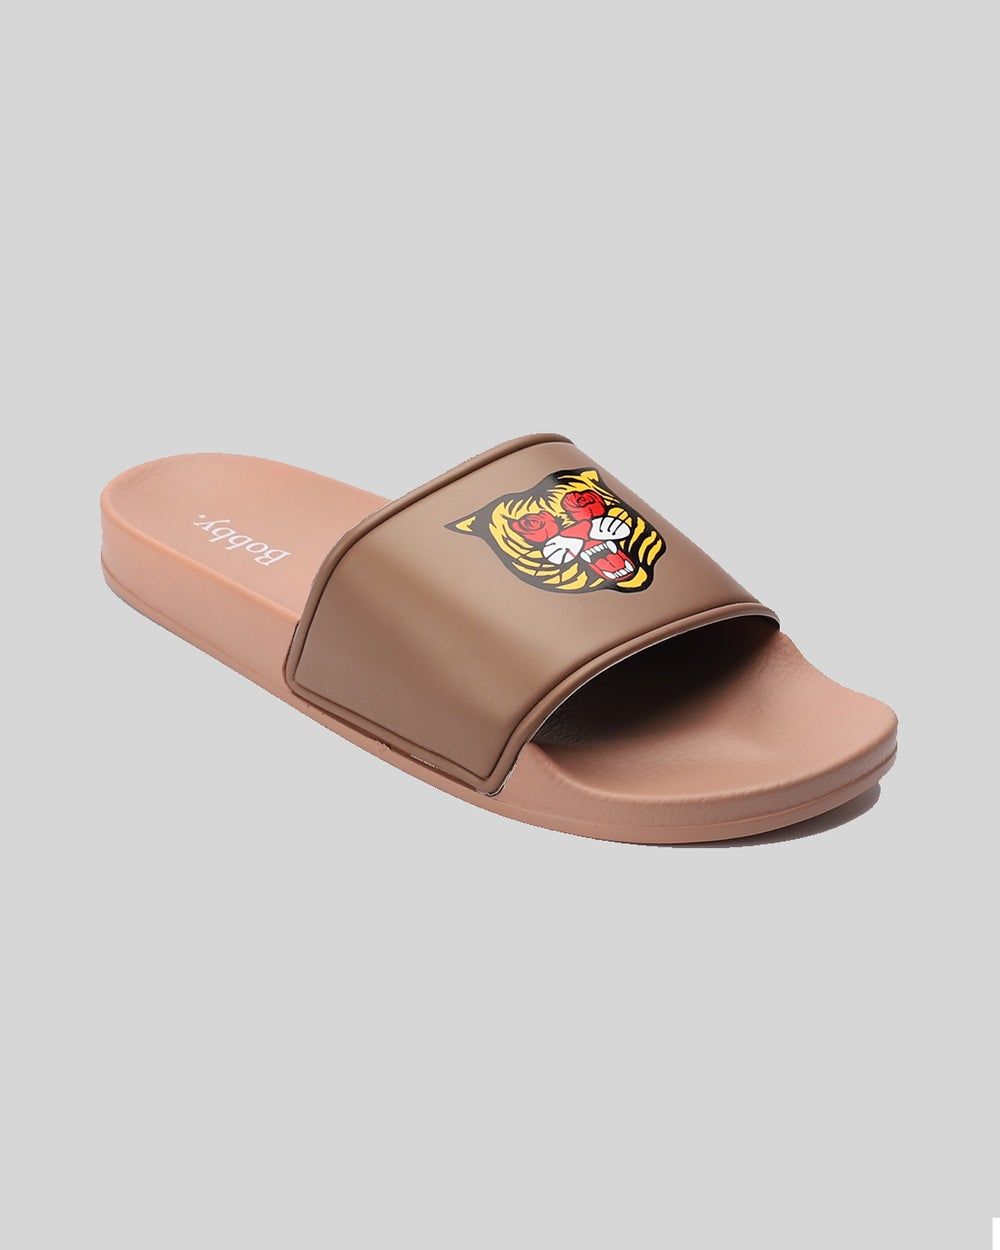 Image of The BLAK Slides in Brown